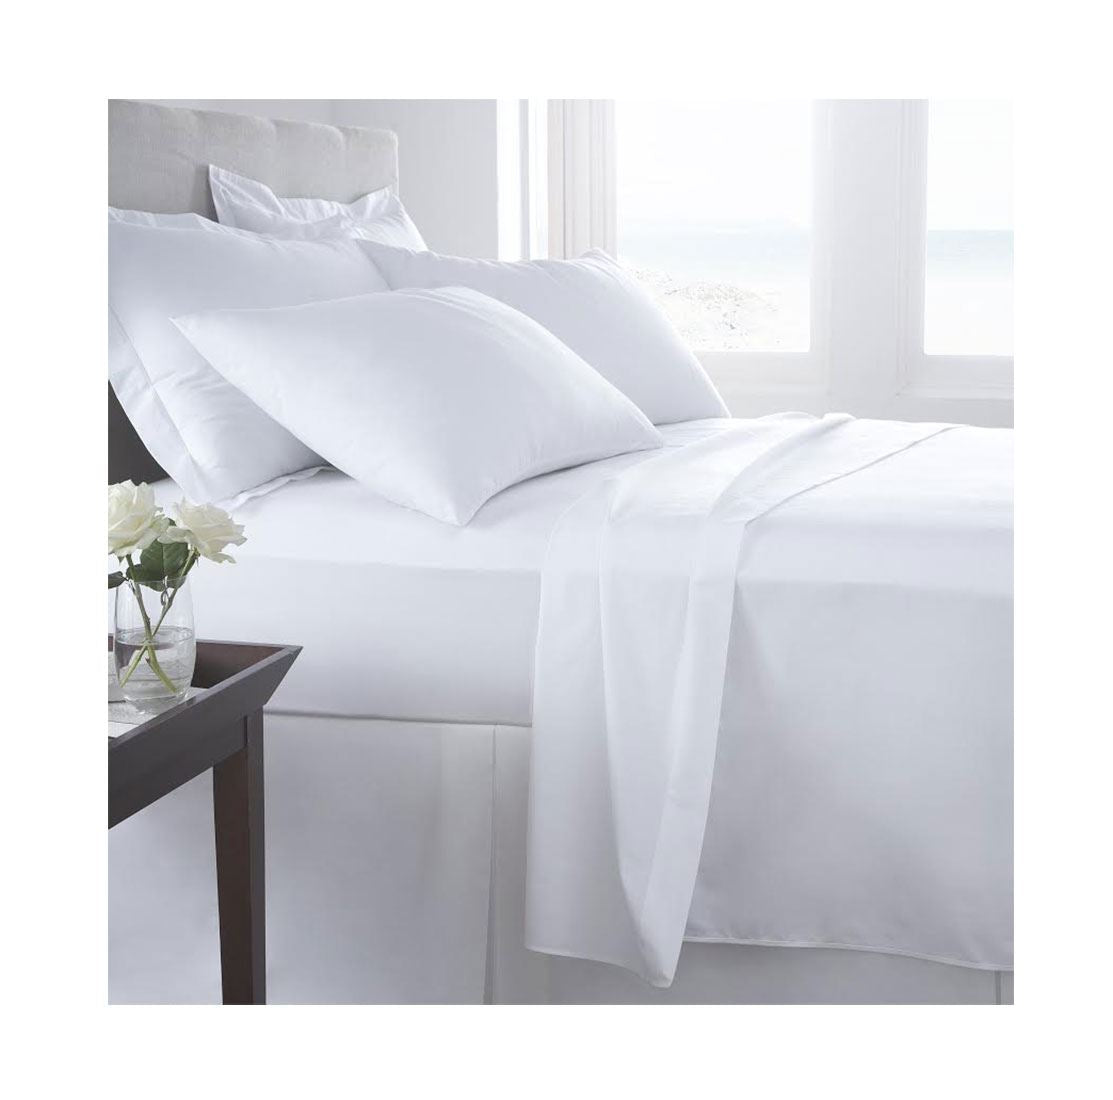 Luxury T400 Egyptian Cotton T-400 Thread Count Duvet Cover Bedding Fitted Flat Sheets